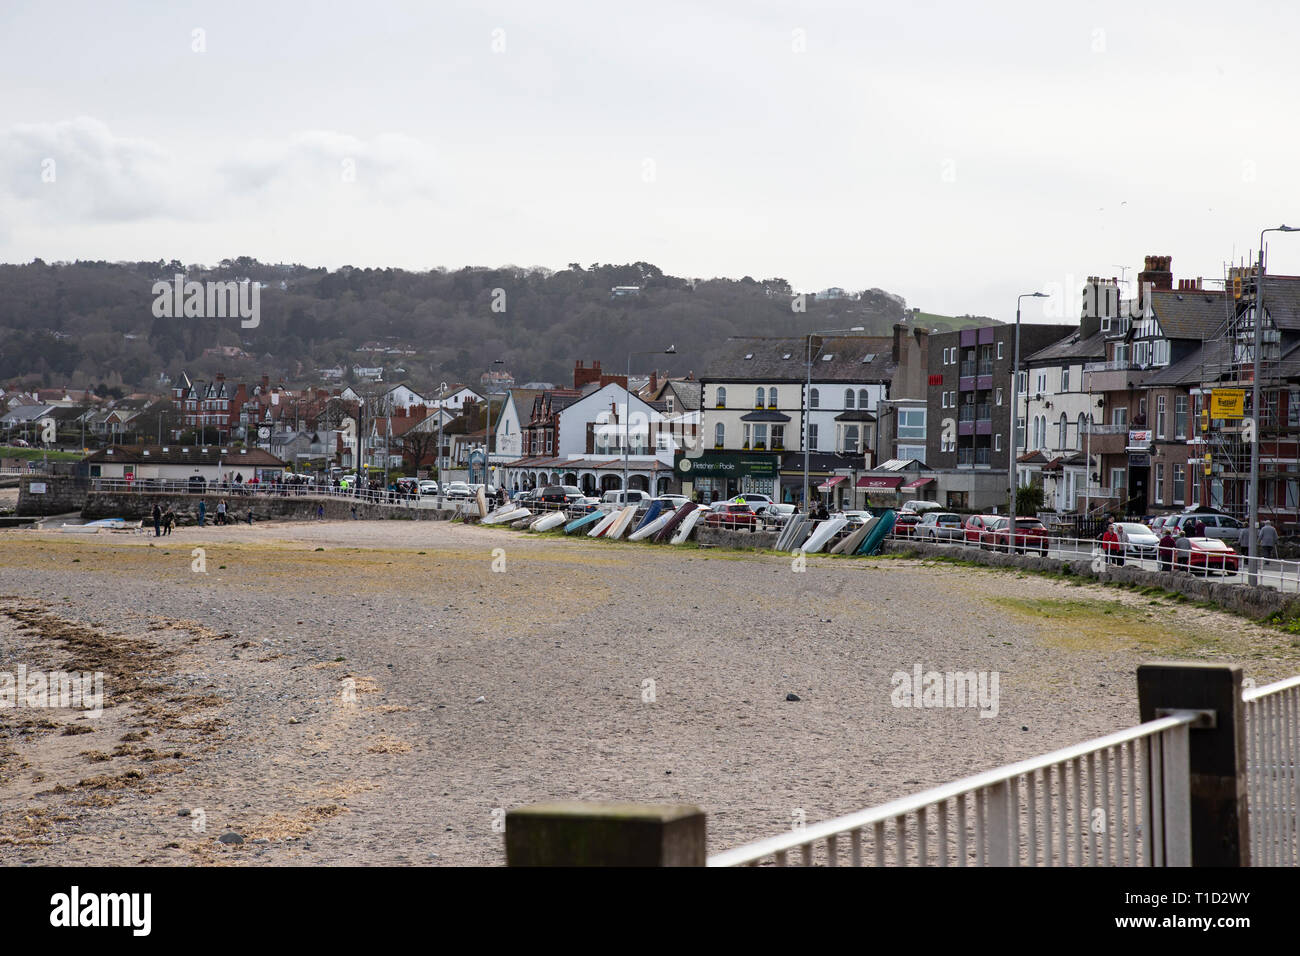 Shops and promenade at Rhos on Sea, North Wales viewed from Rhos point. Stock Photo